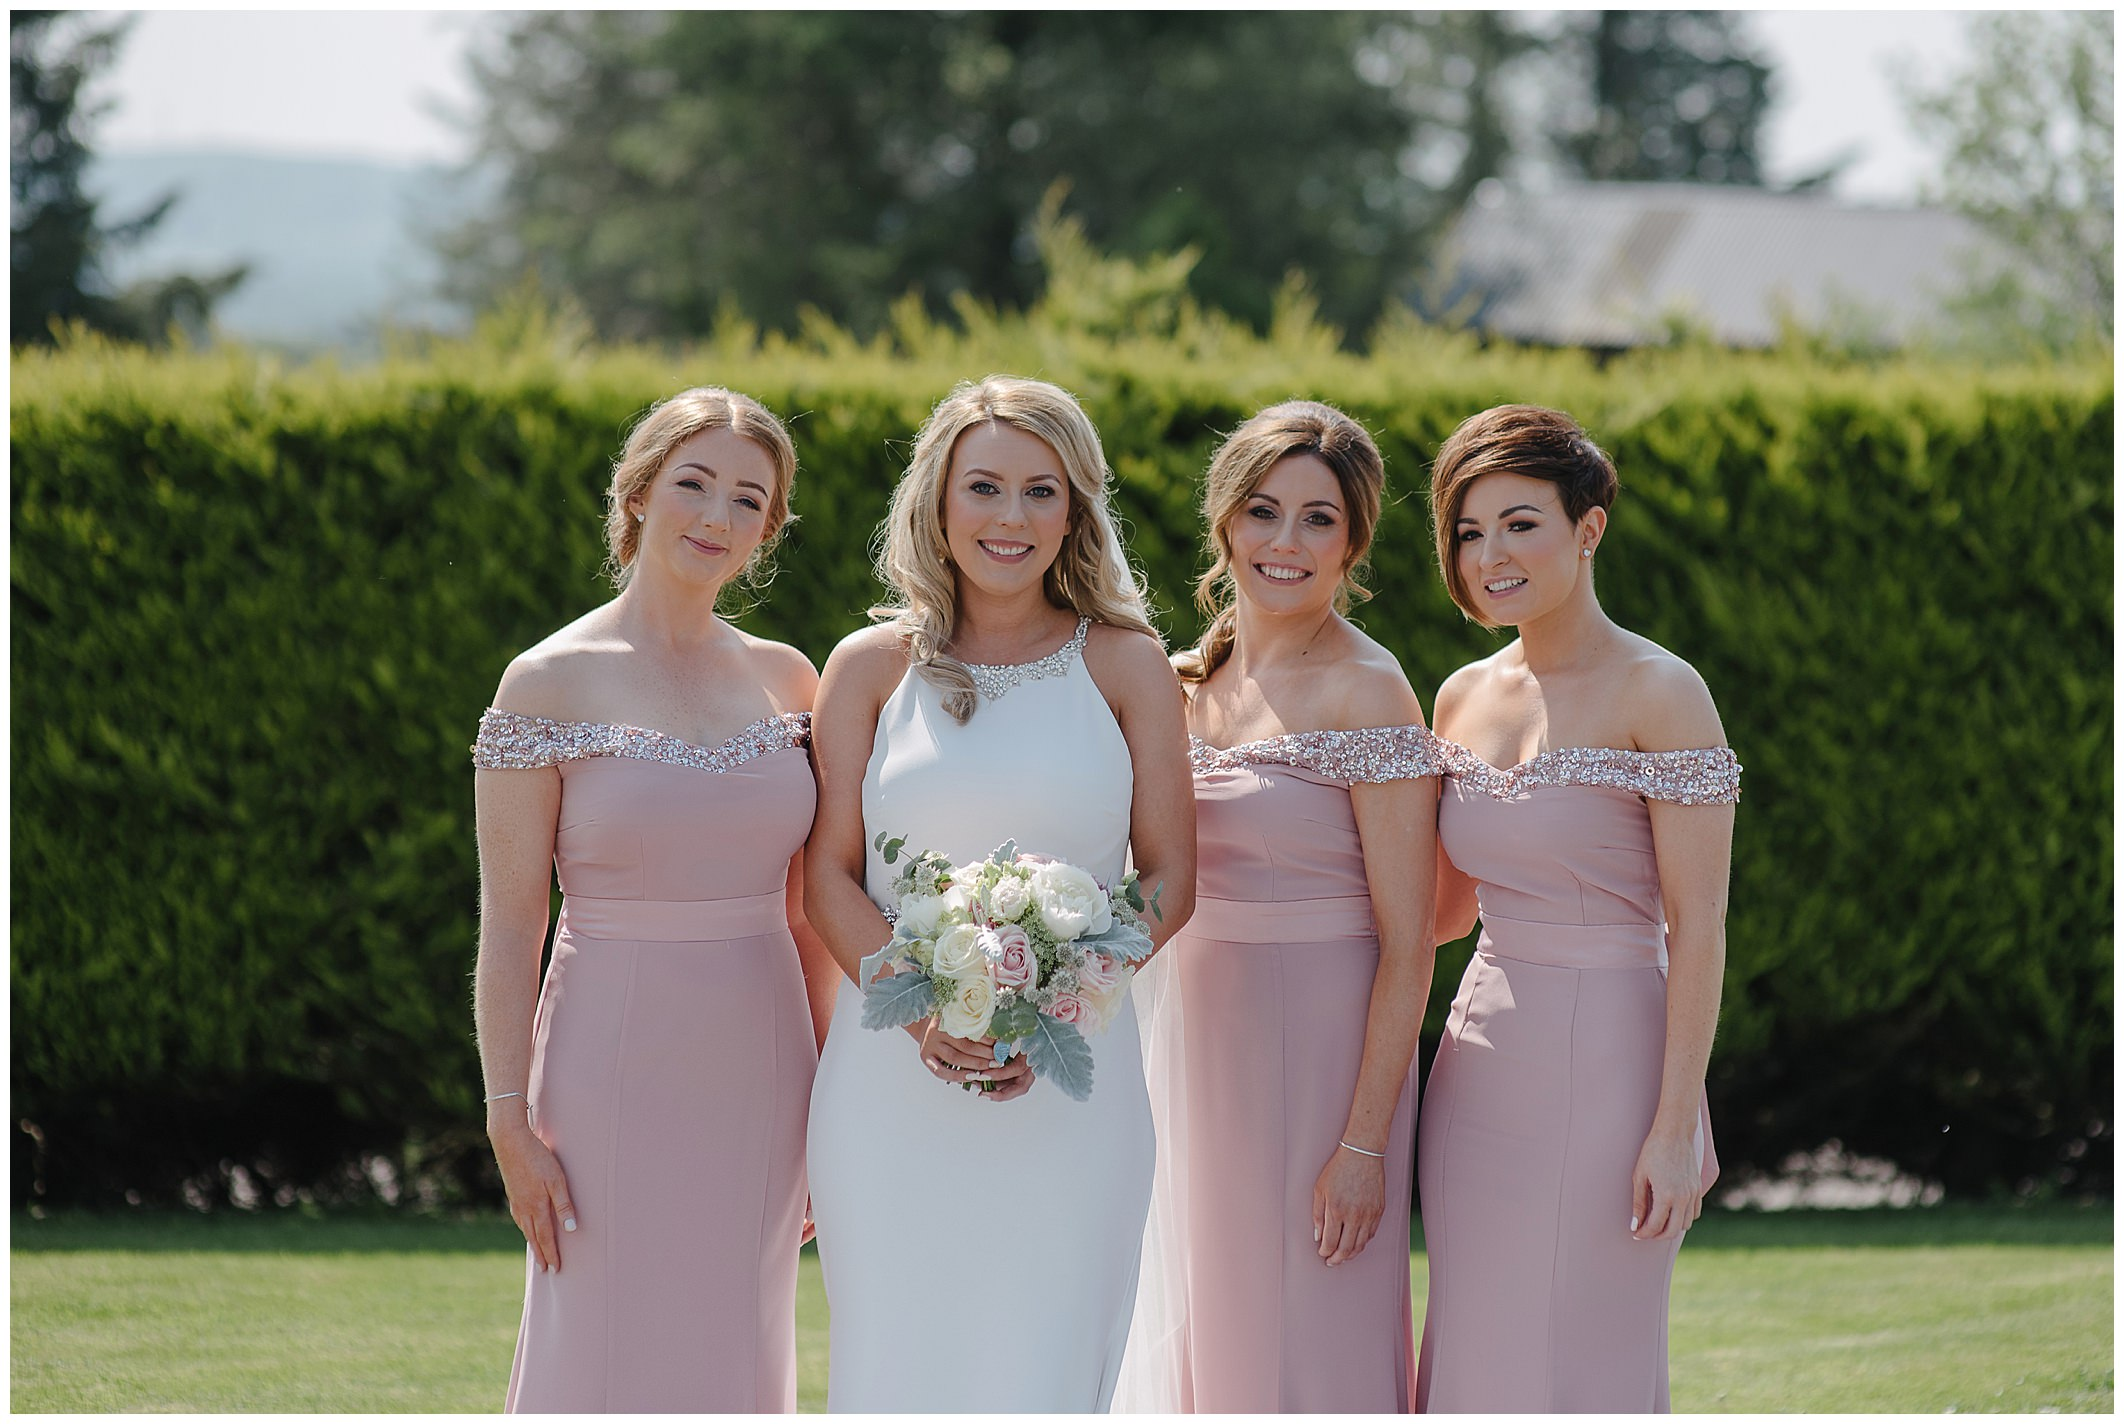 ballymagarvey-village-wedding-jude-browne-photography-023.jpg